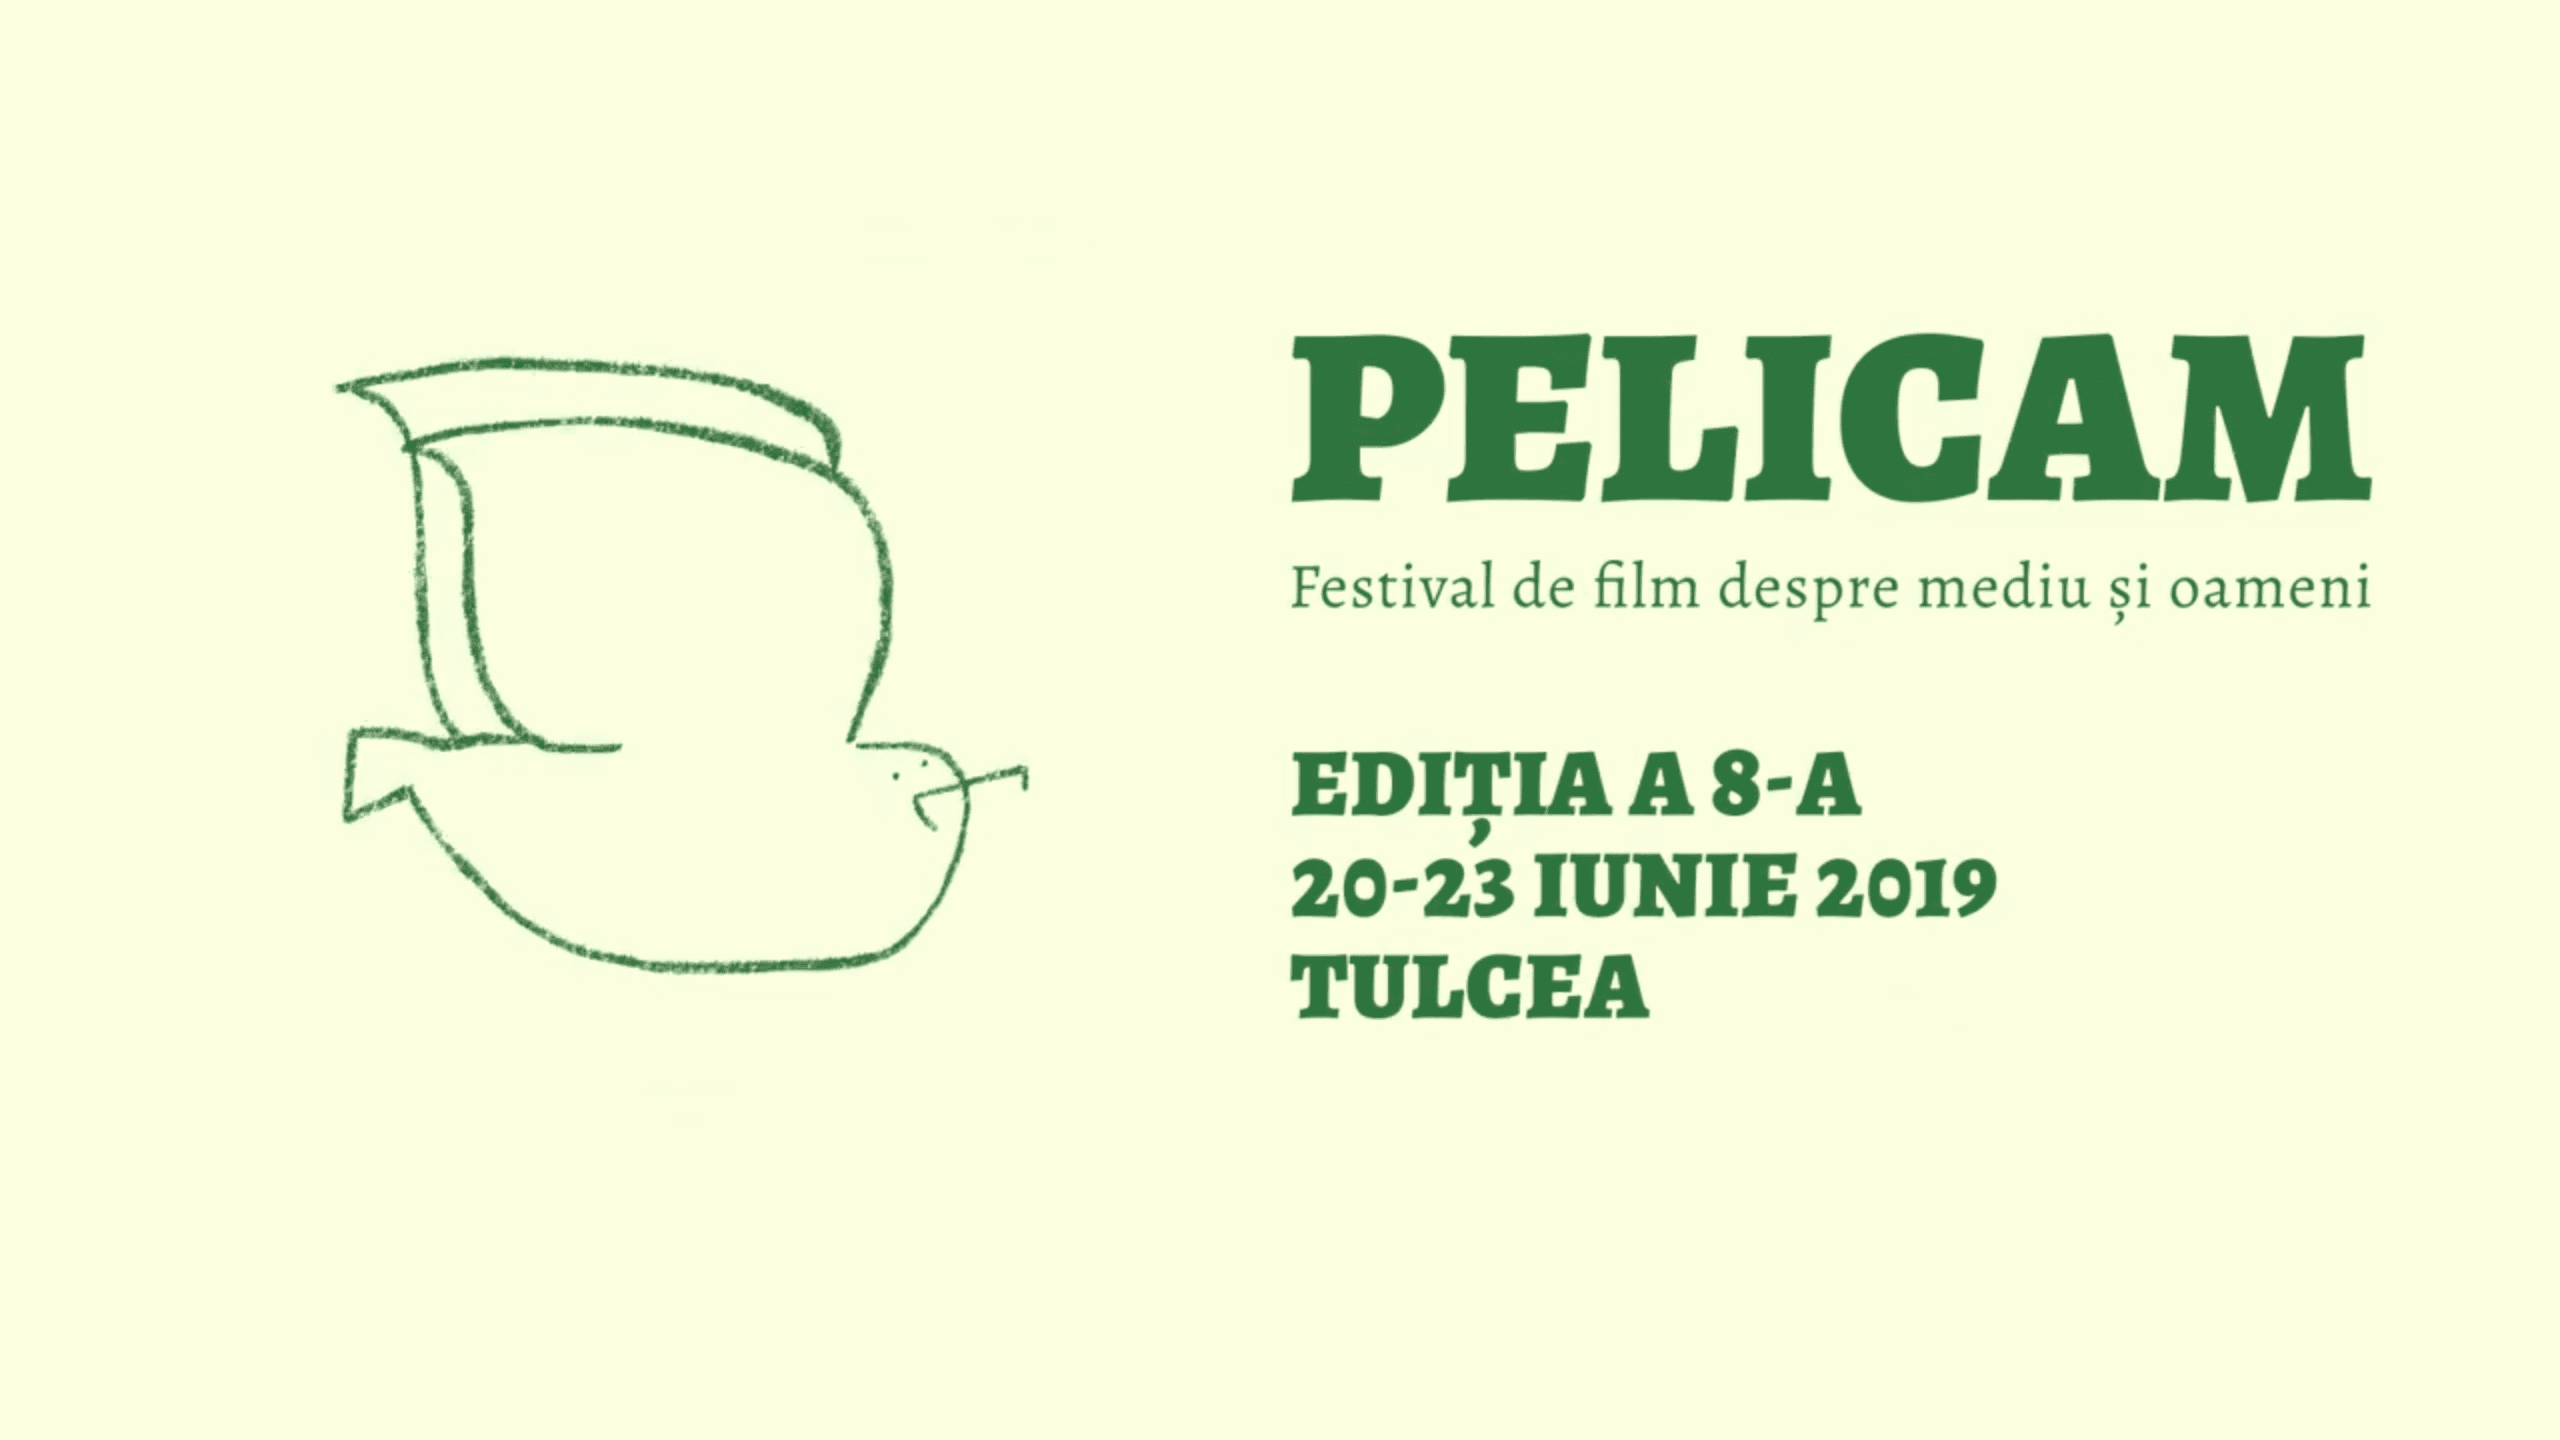 Pelicam Festival International de Film Tulcea 2019